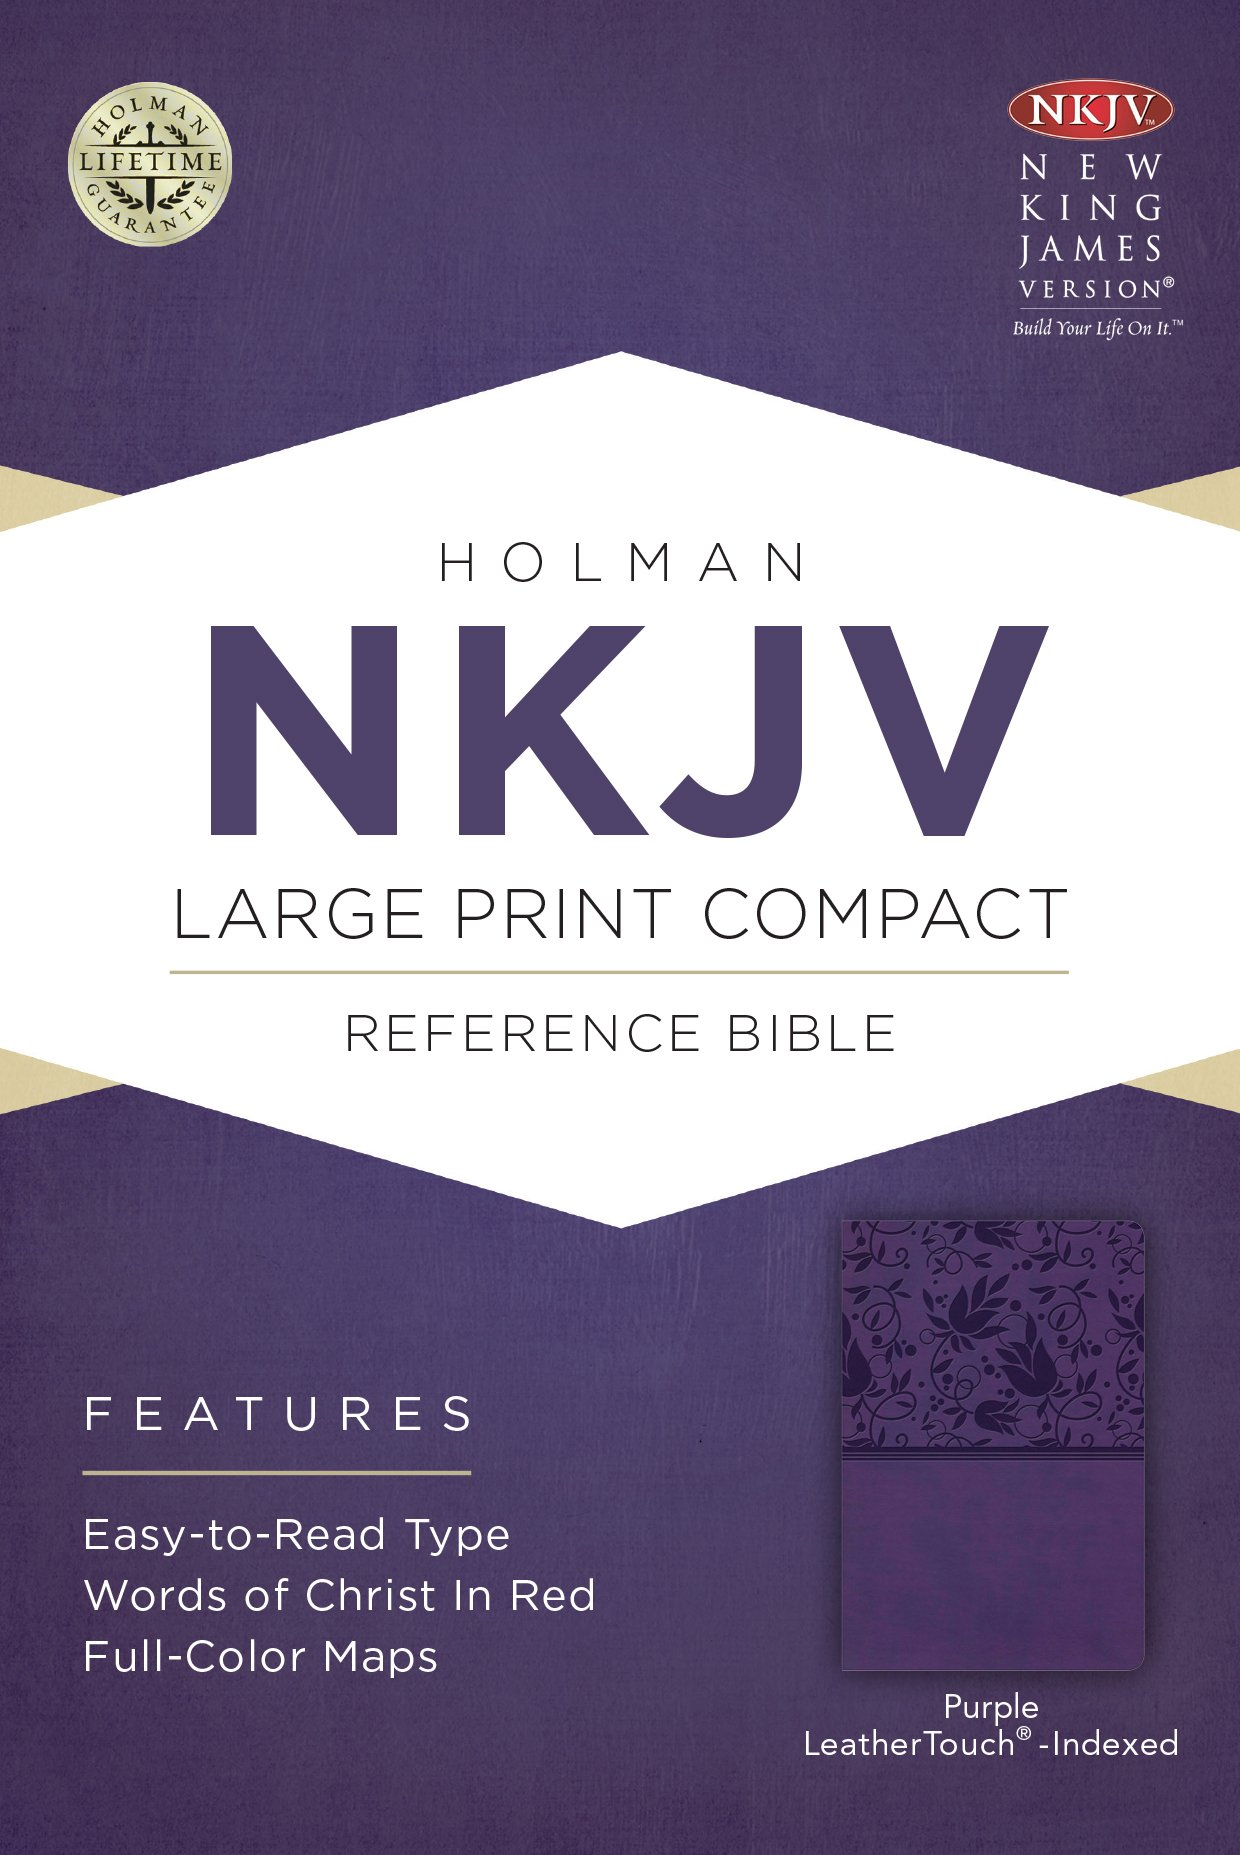 NKJV Large Print Compact Reference Bible, Purple LeatherTouch, Indexed pdf epub